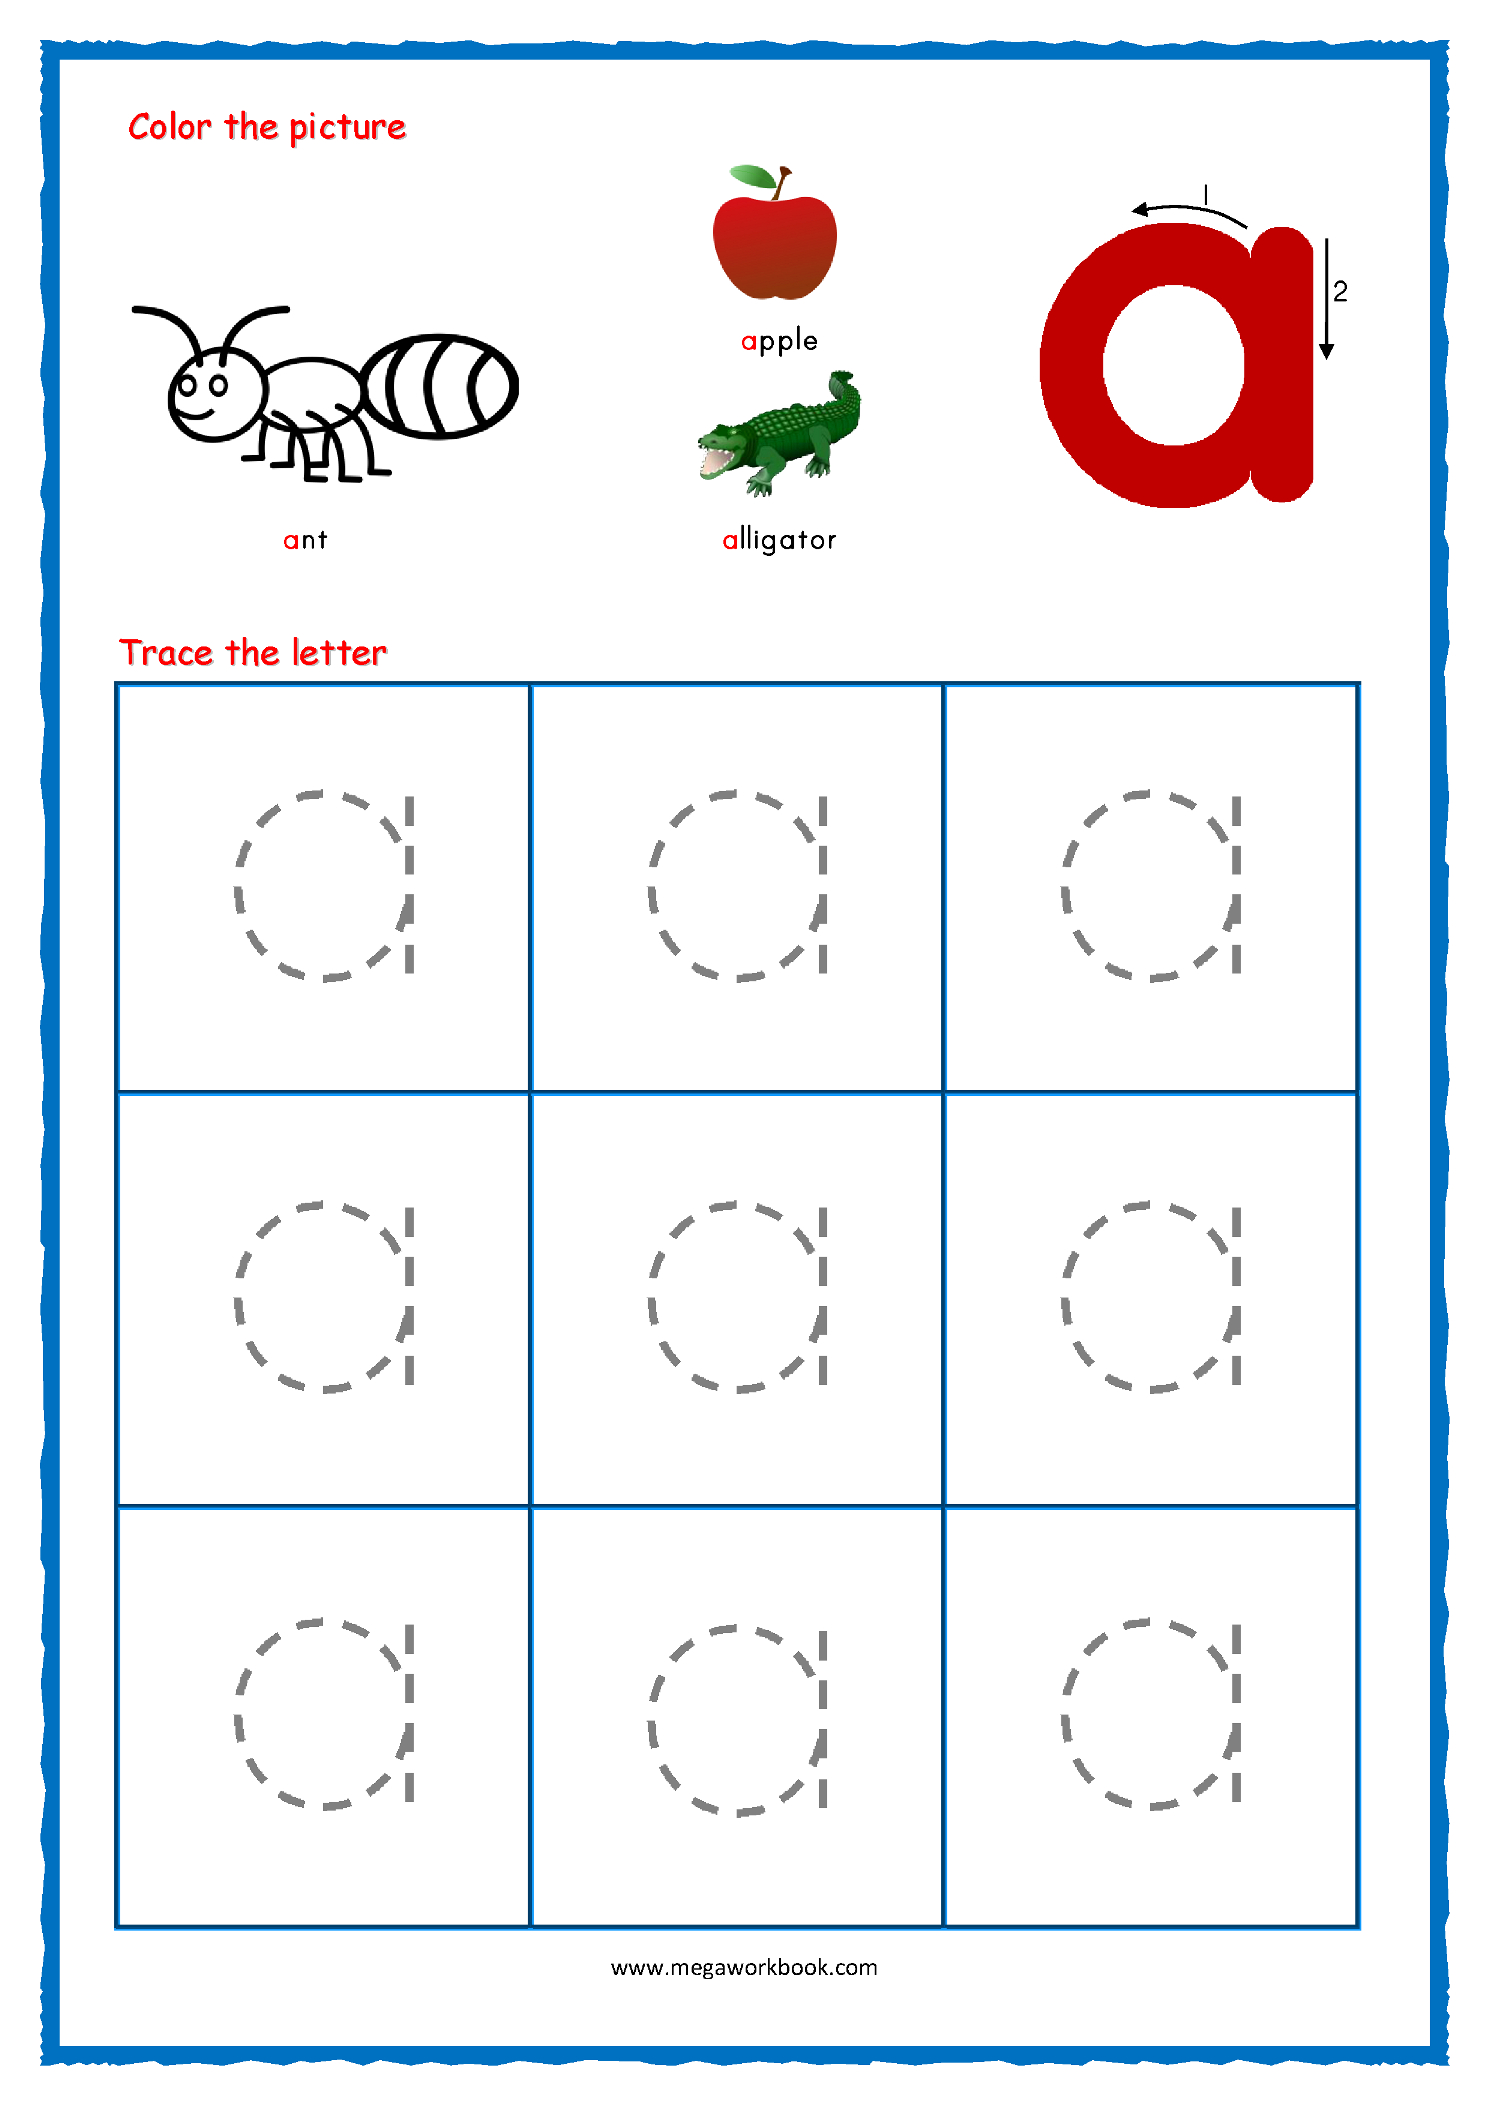 Alphabet Tracing - Small Letters - Alphabet Tracing regarding Lowercase Letters Tracing Worksheets Pdf